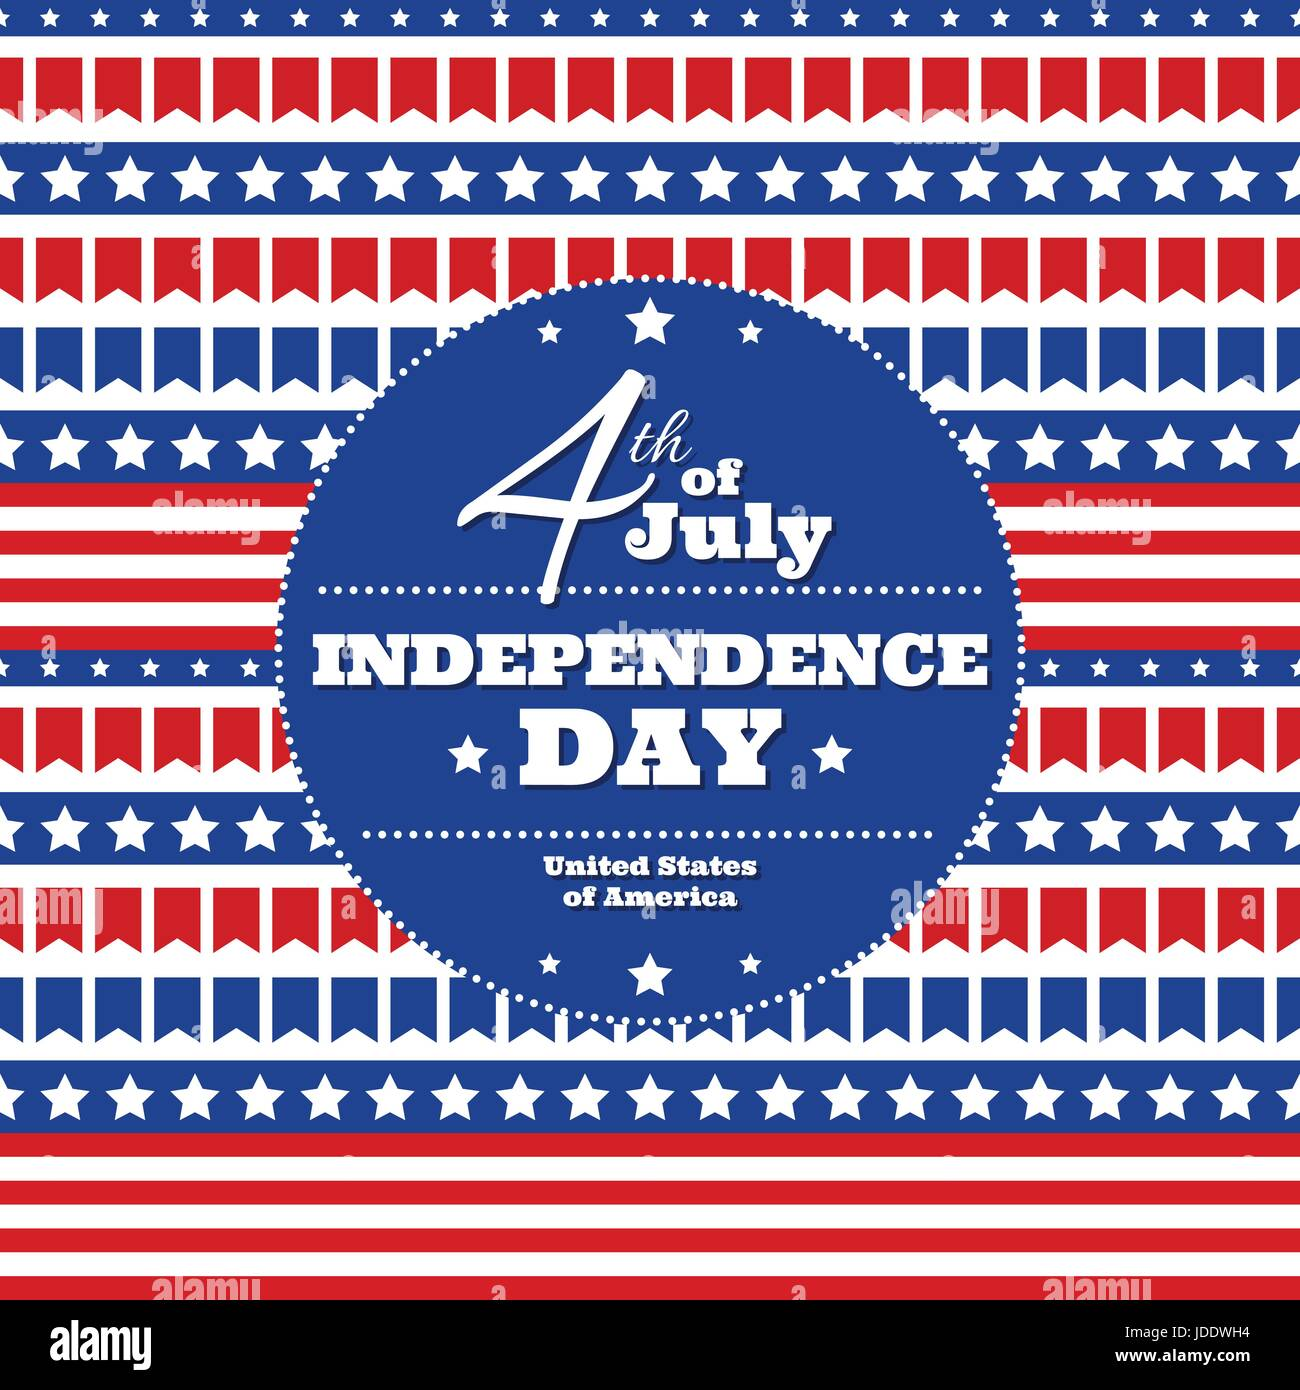 Independence day in usa july 4th greeting card or banner template independence day in usa july 4th greeting card or banner template vector design element pattern of small flags white stars and colorful stripes m4hsunfo